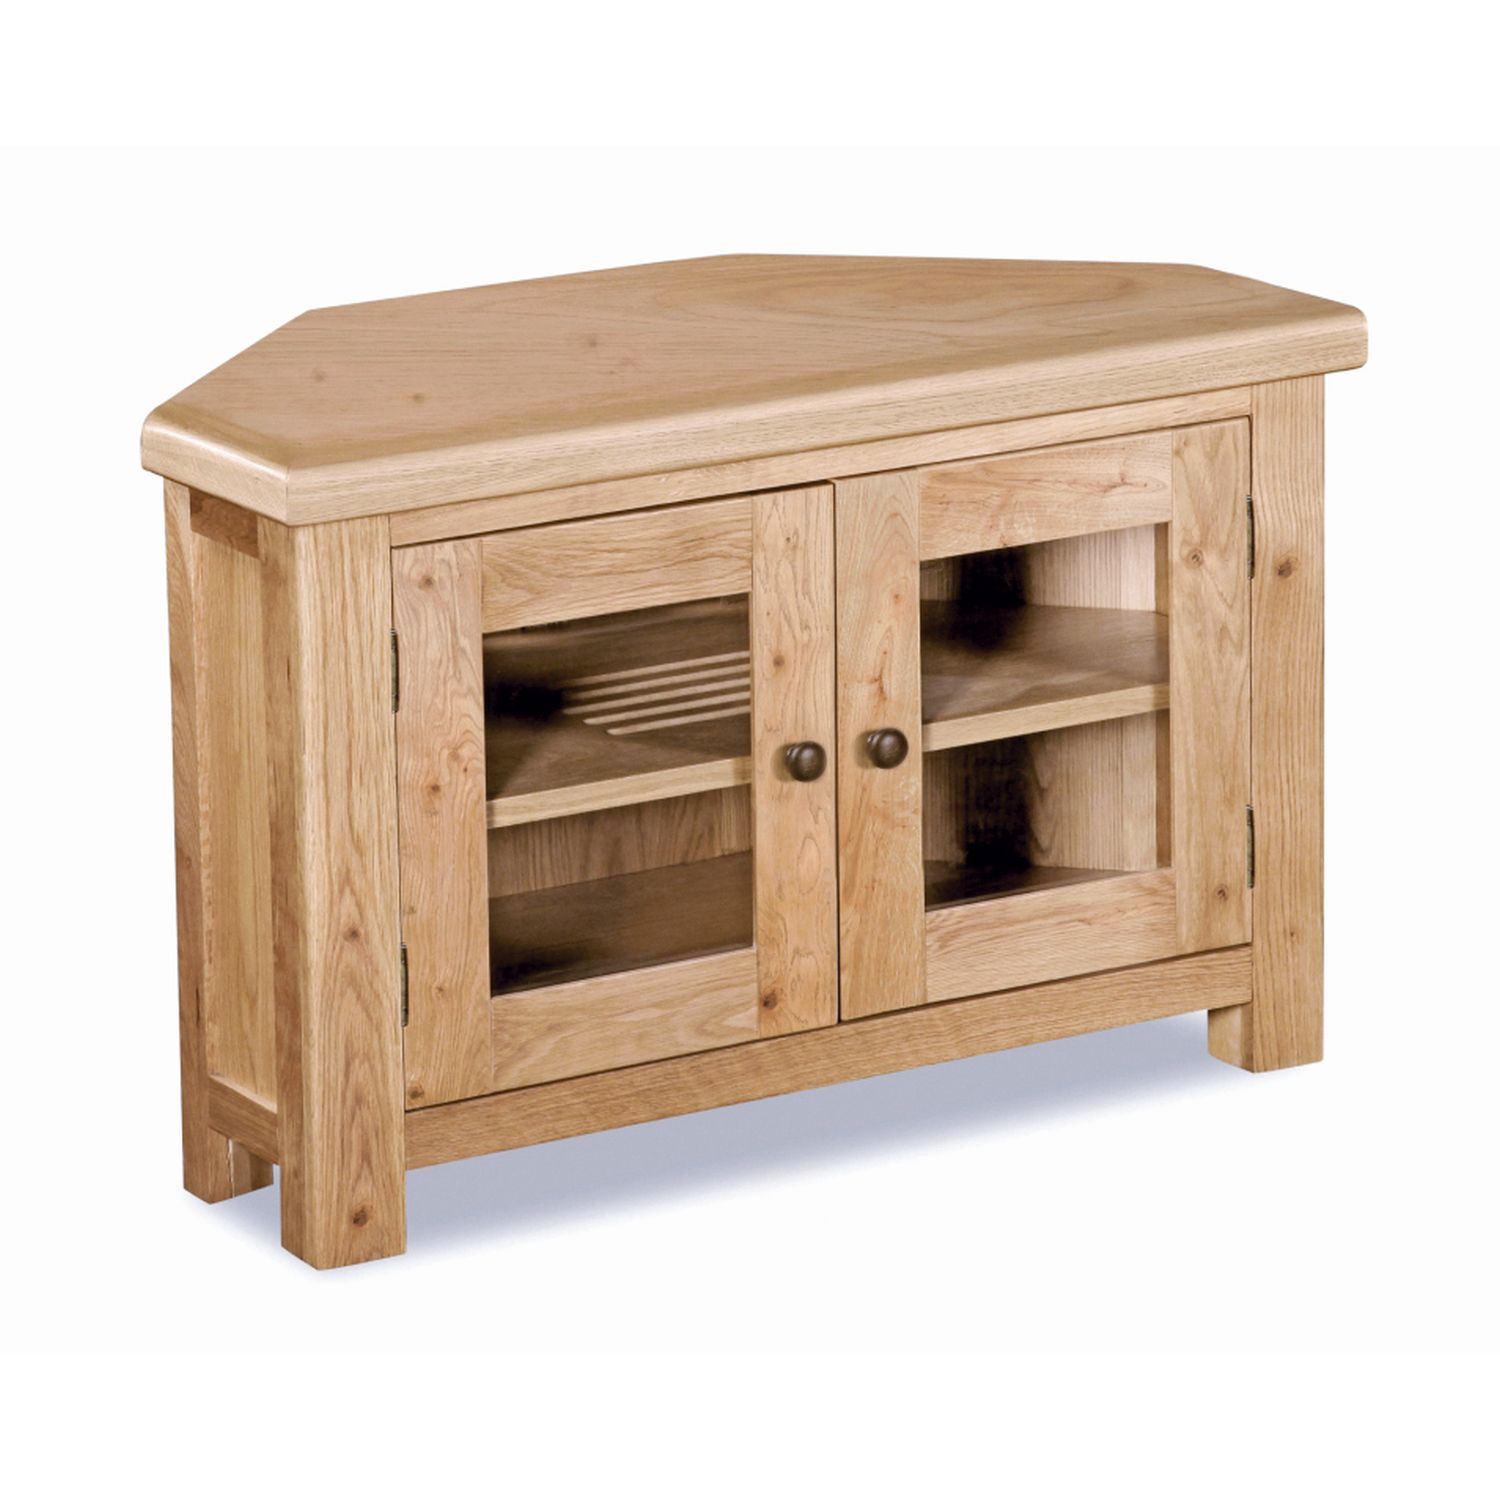 Image of Fairford Corner Tv Stand